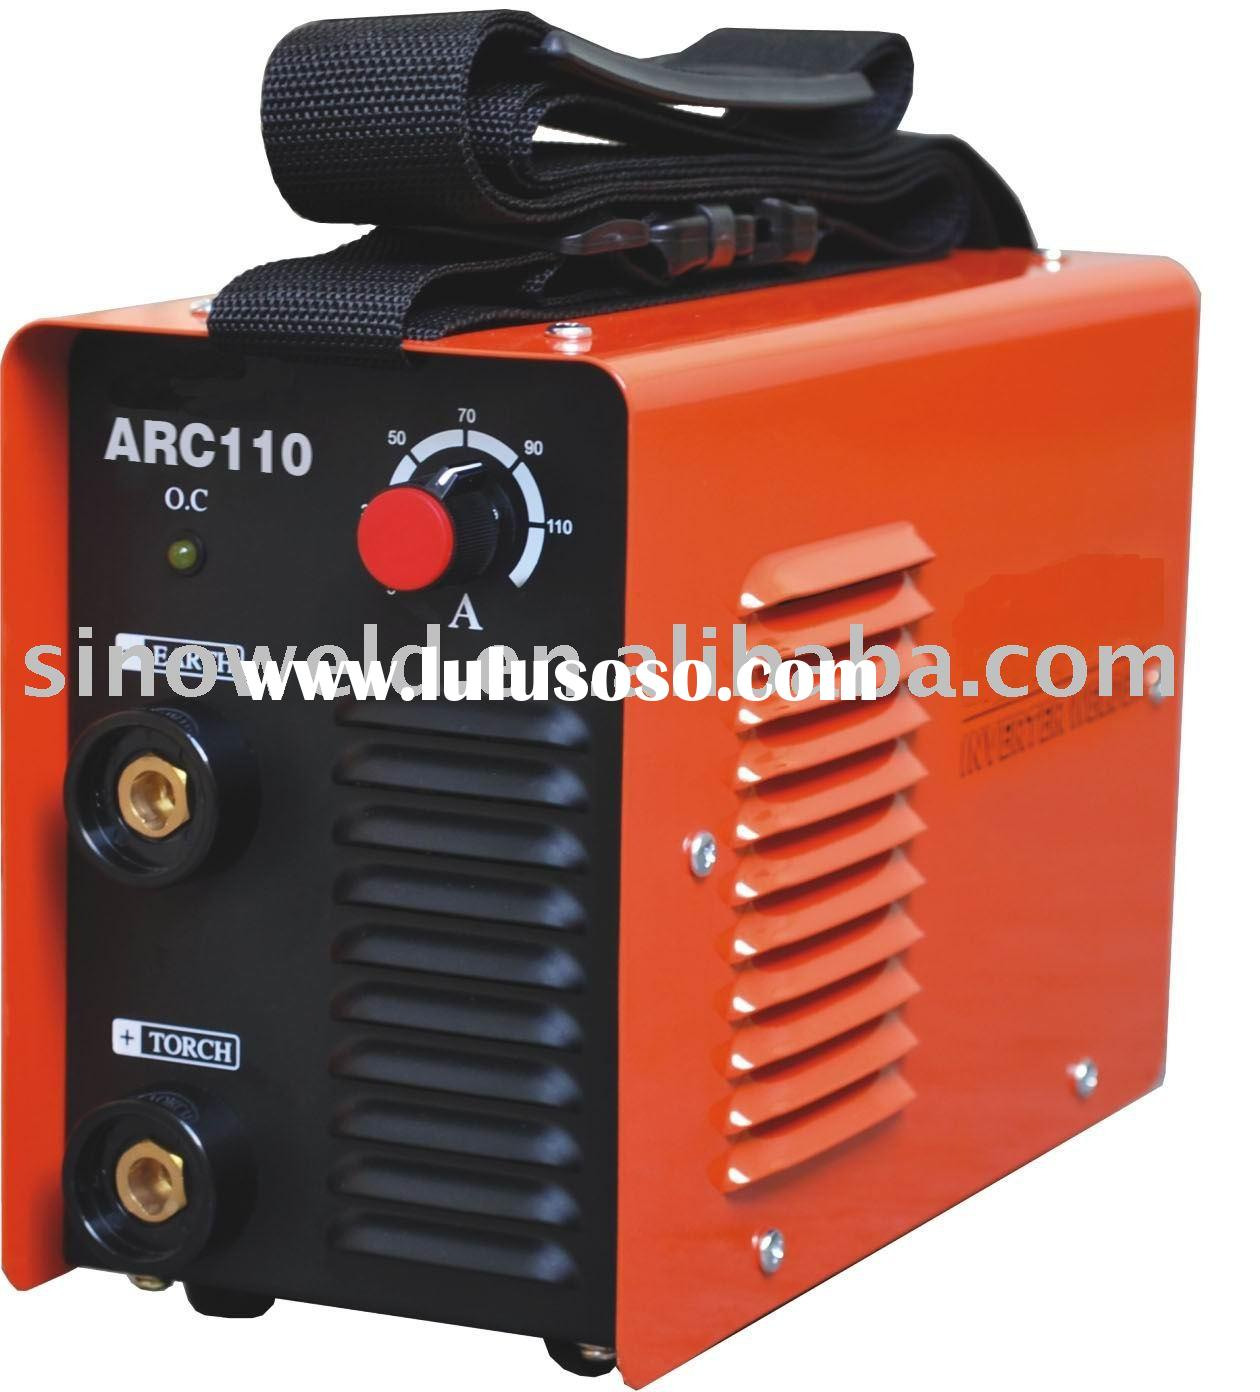 Circuit Of Zx7 160 Mma Dc Inverter Welder For Sale Pricechina Igbt Manufacturers In Lulusoso Welding Machine Arc 110 With Single Phase